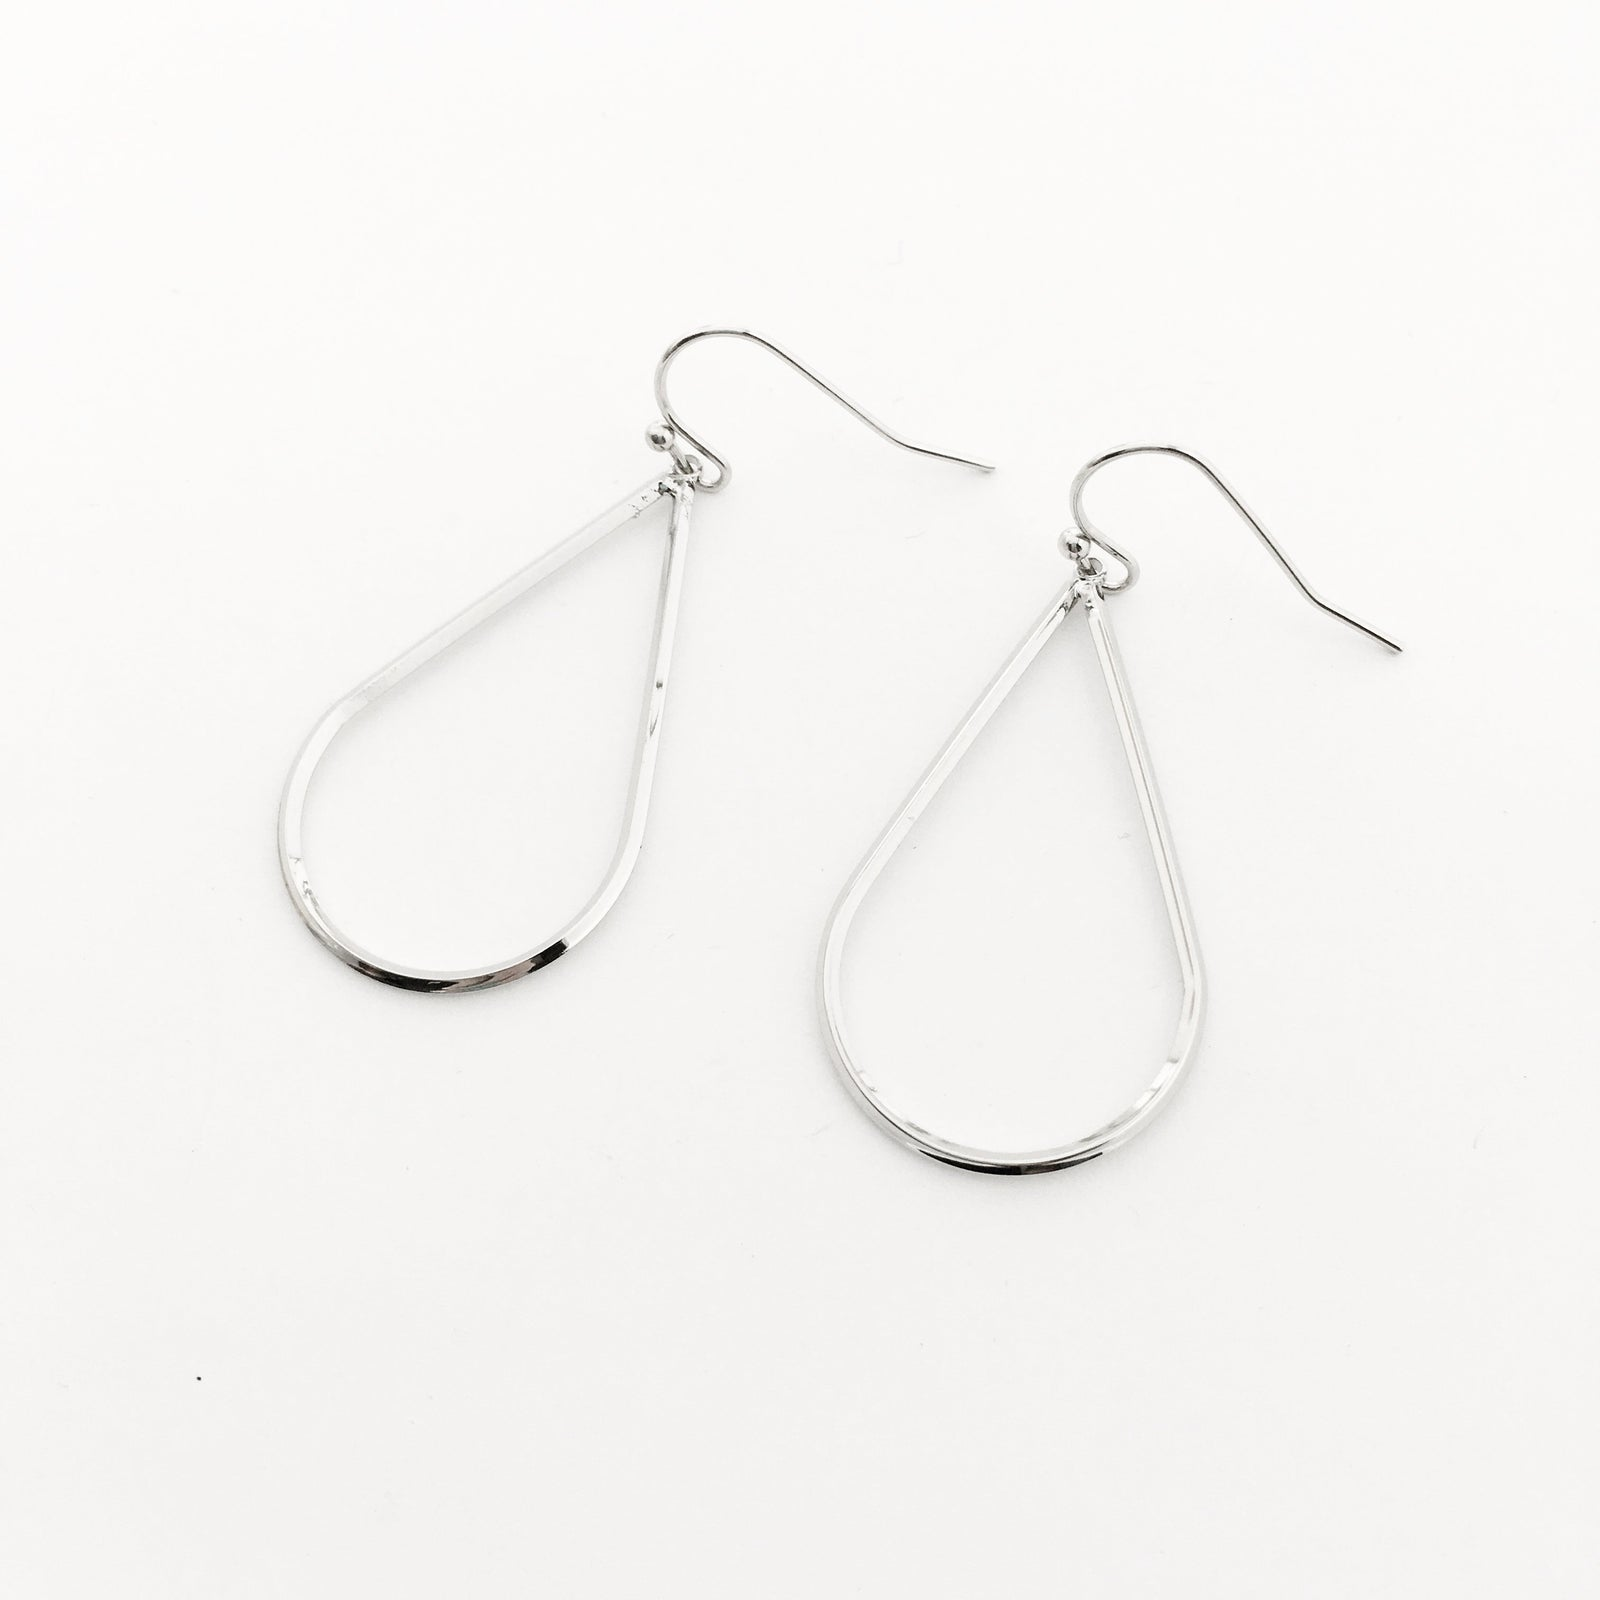 DROP EARRINGS | RHODIUM SILVER